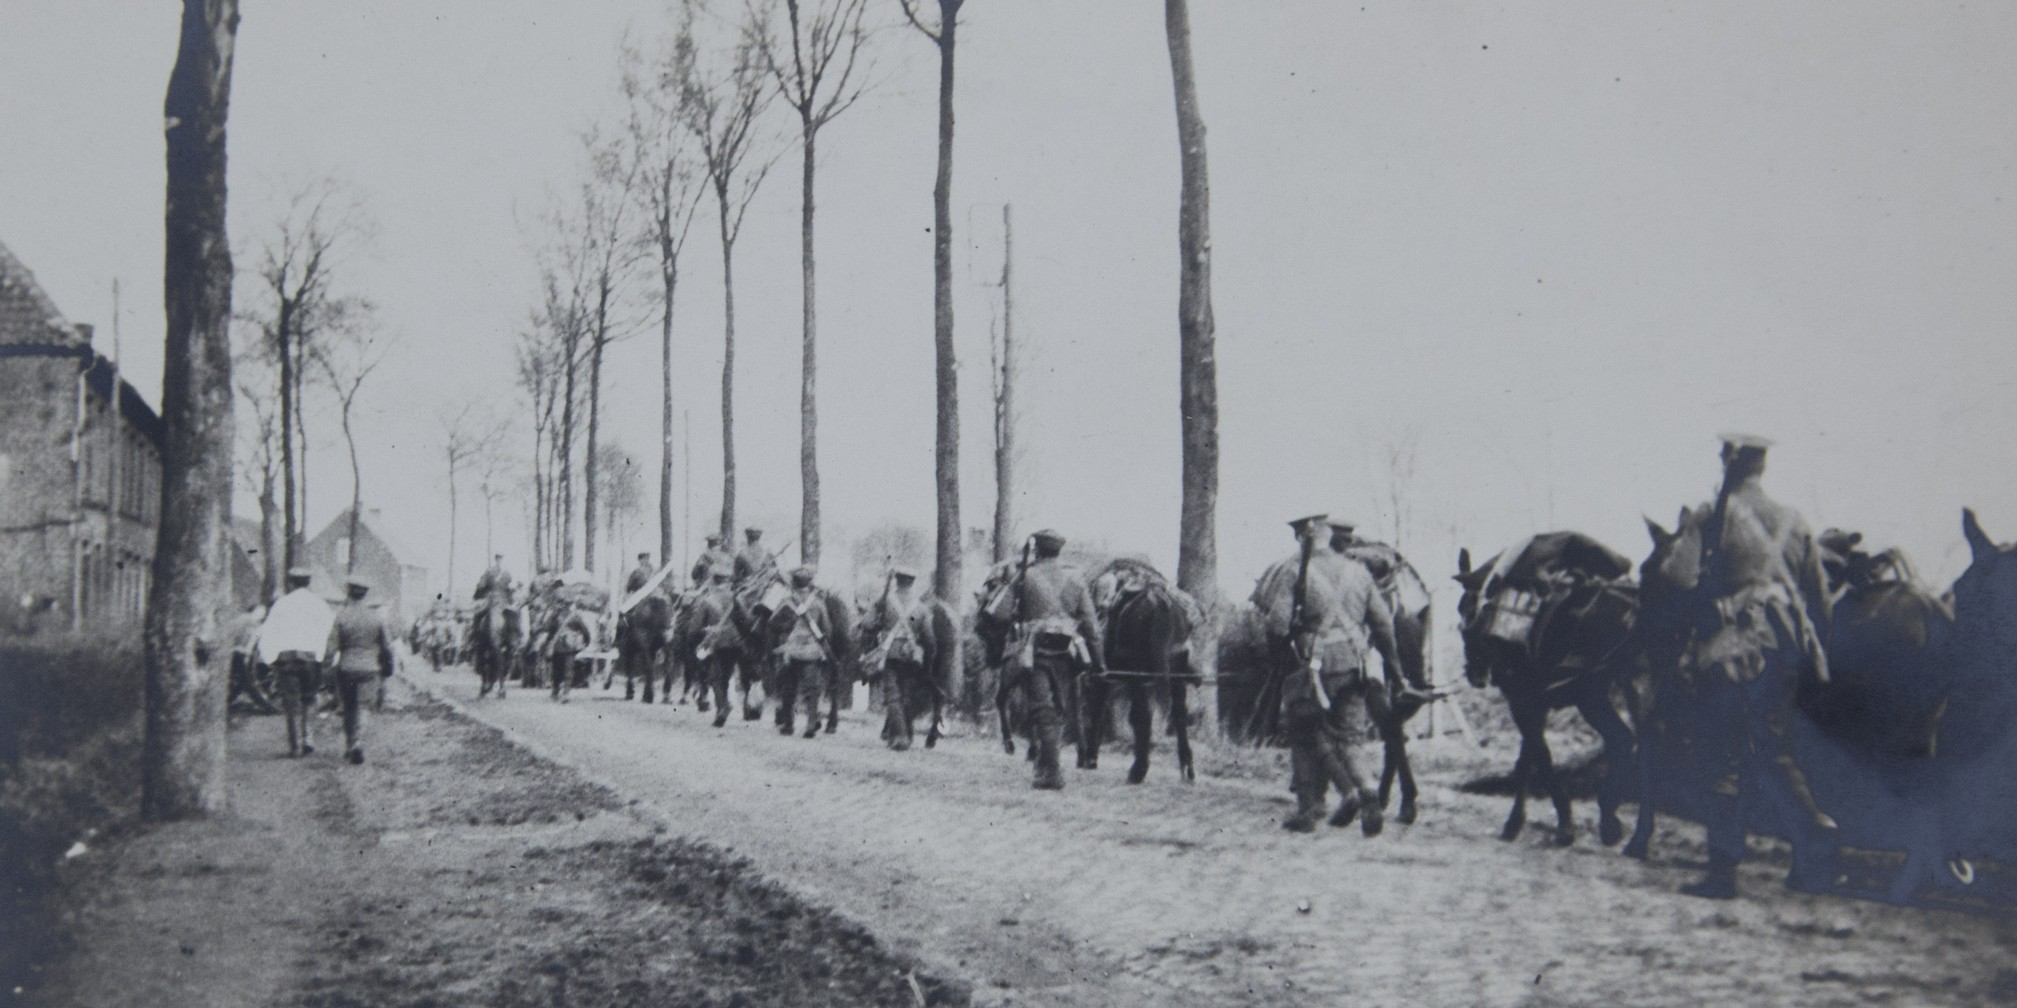 Unofficial photographs show us scenes of the war before official photographers were brought to Europe